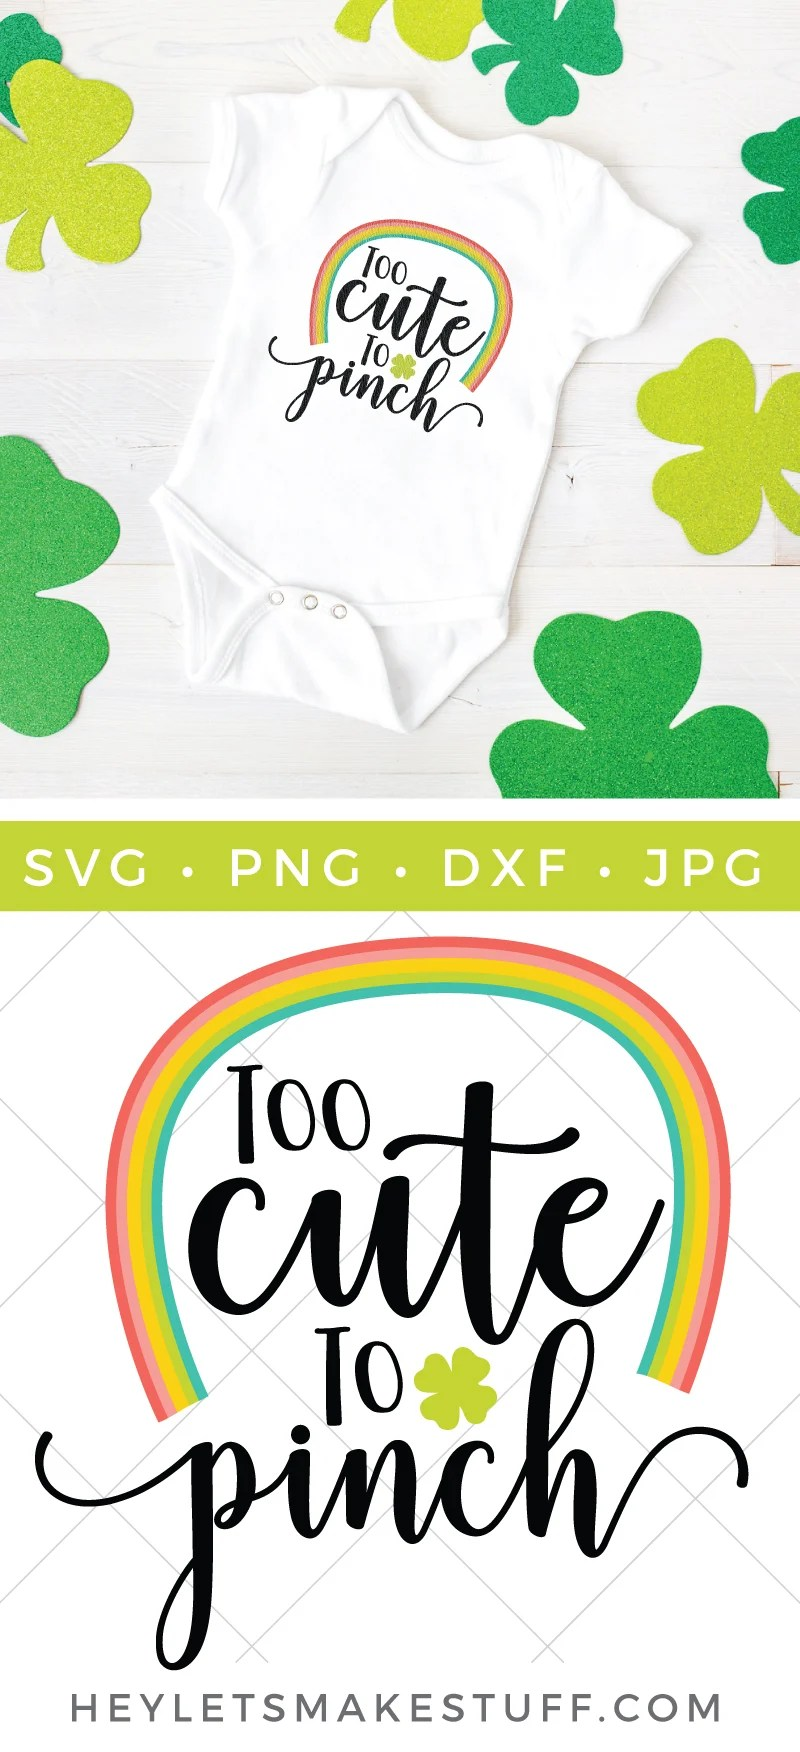 Have a little cutie in your life who is too cute to pinch? This St. Patrick's Day SVG is perfect for bodysuits, kids' t-shirts, water bottles, and more! Get this FREE cut file, plus 15 other free St. Patrick's Day-themed SVG files. via @heyletsmakestuf